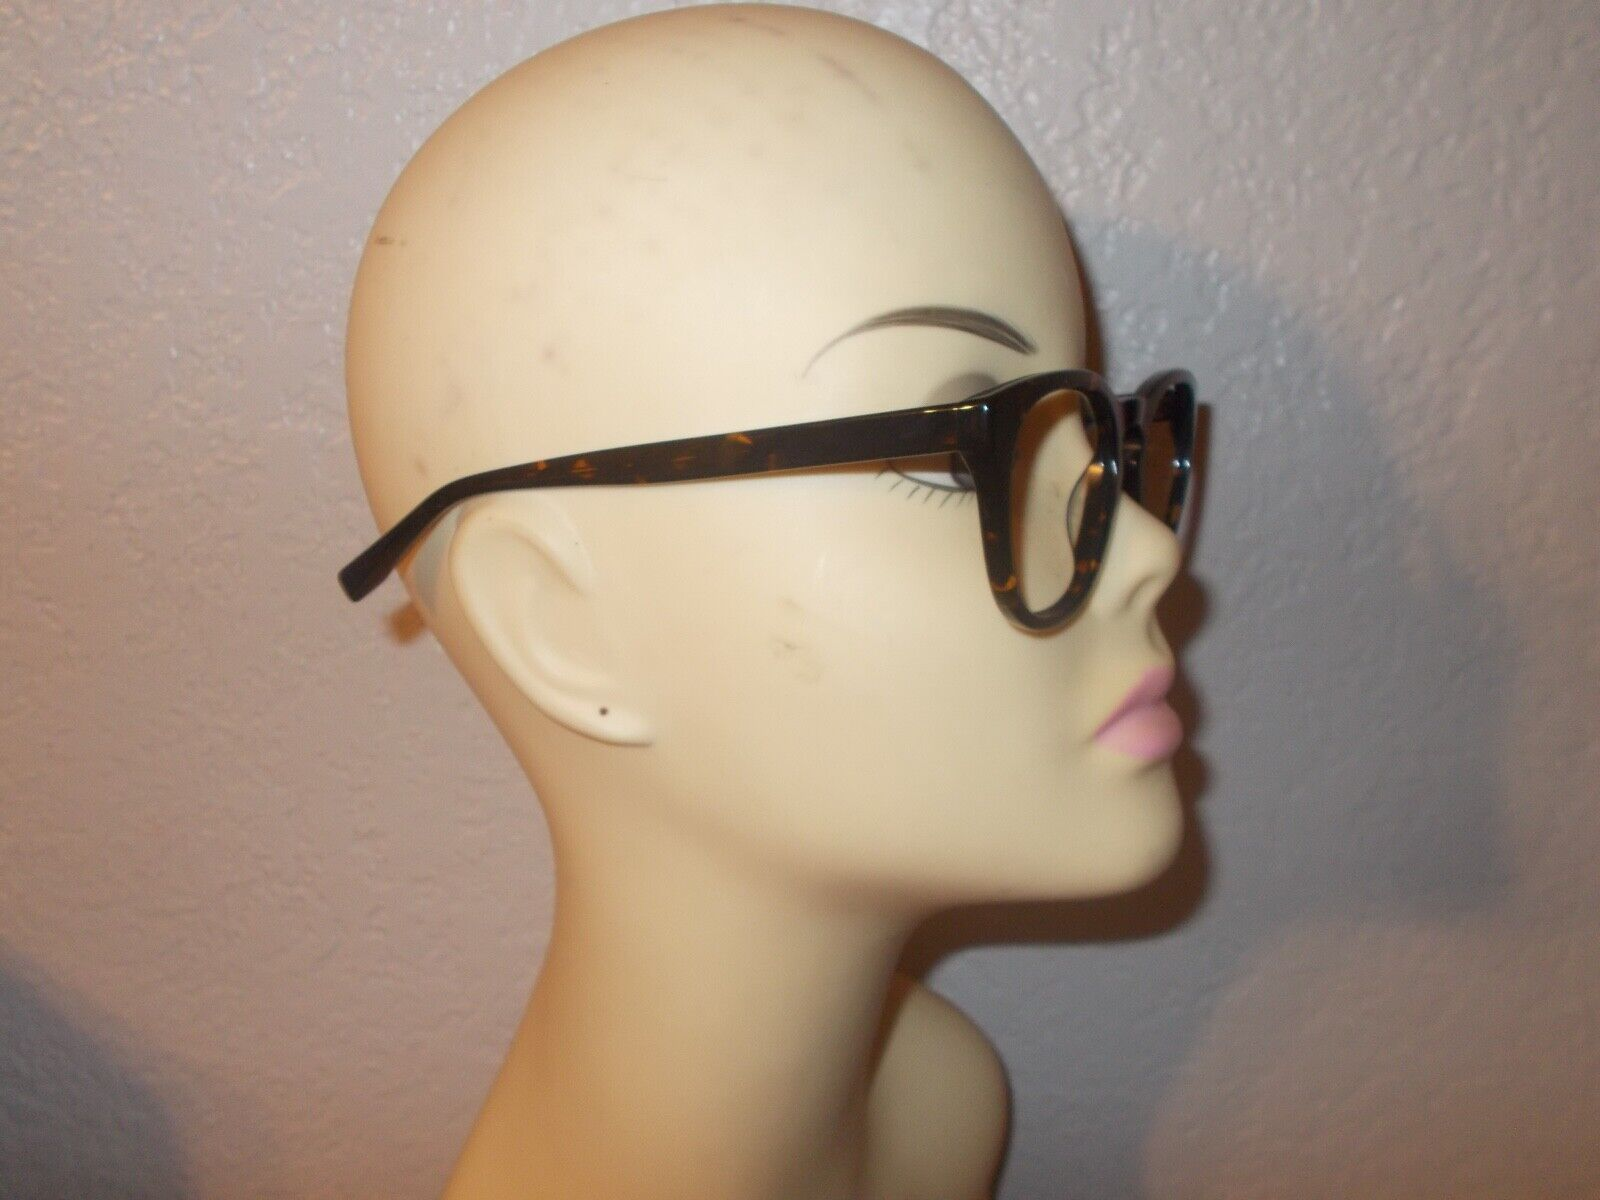 Warby Parker Ormsby 200 Tortoise Frame Sunglasses - image 3